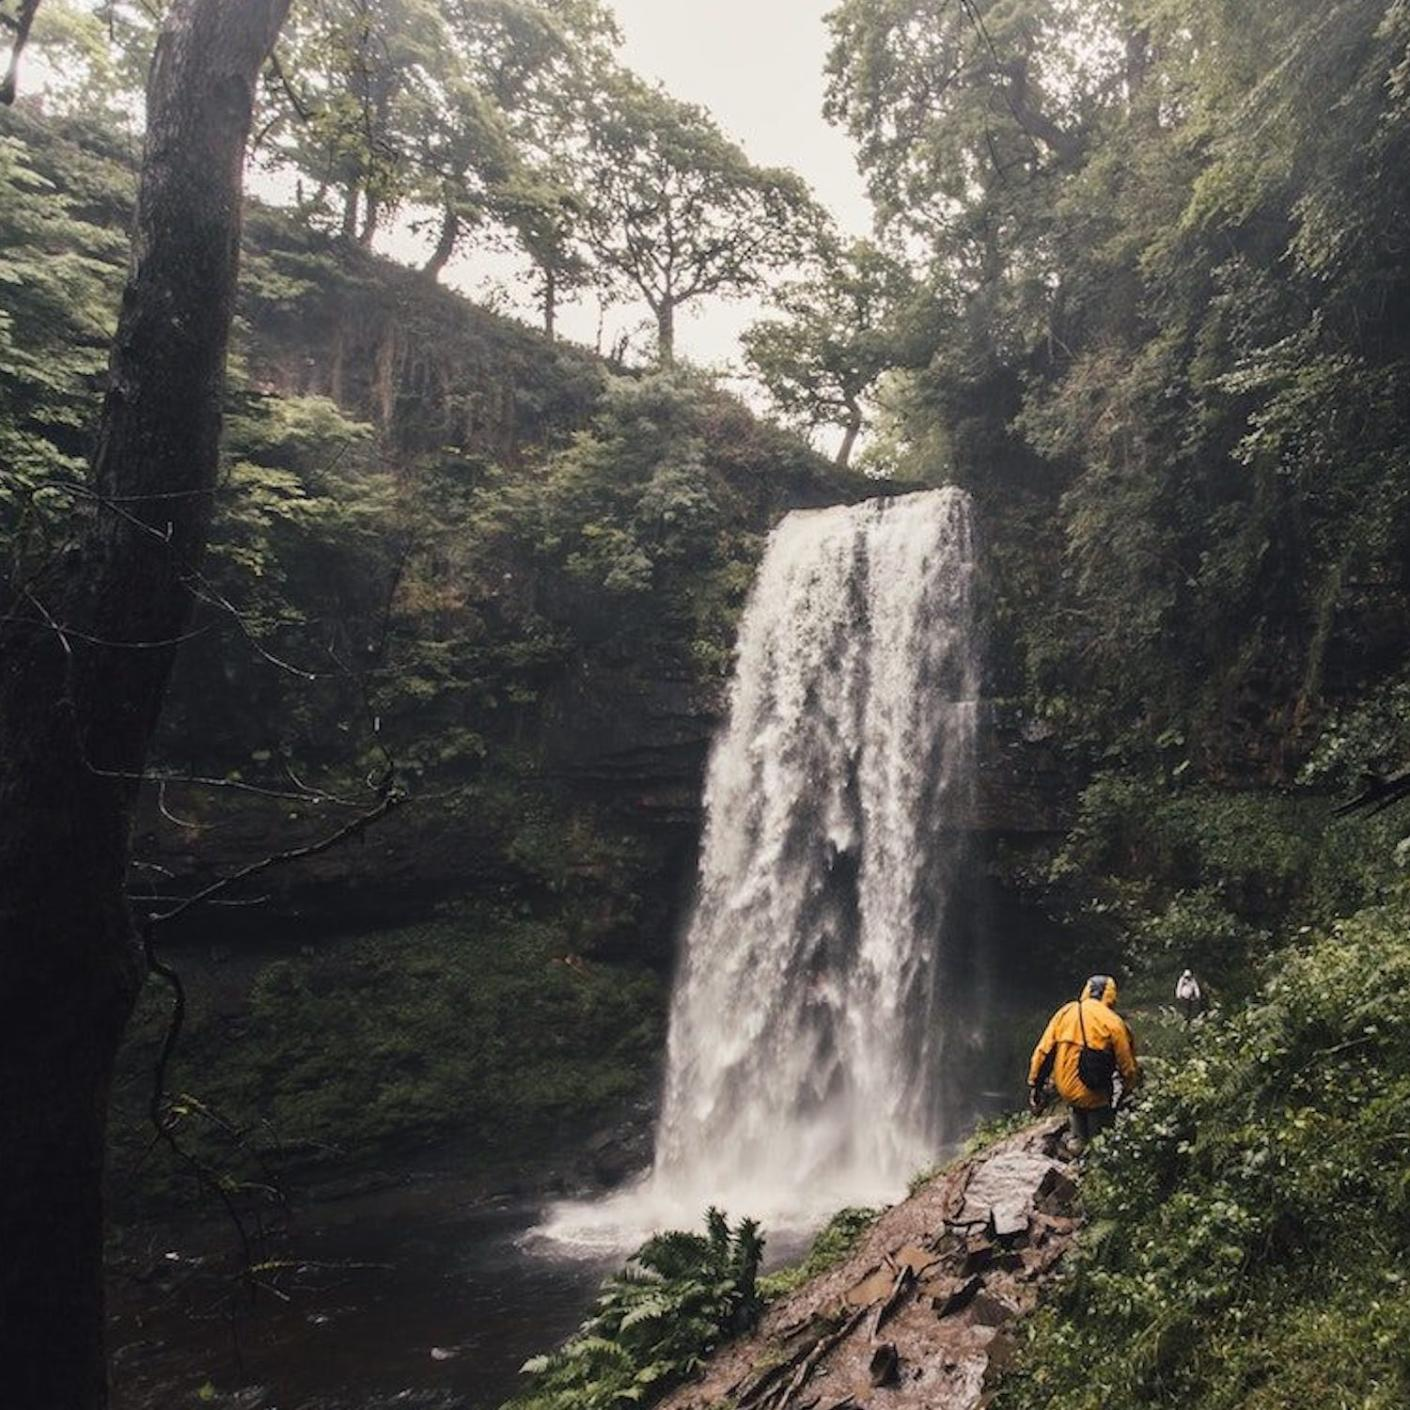 A man in a yellow jacket hiking towards a waterfall in the UK.